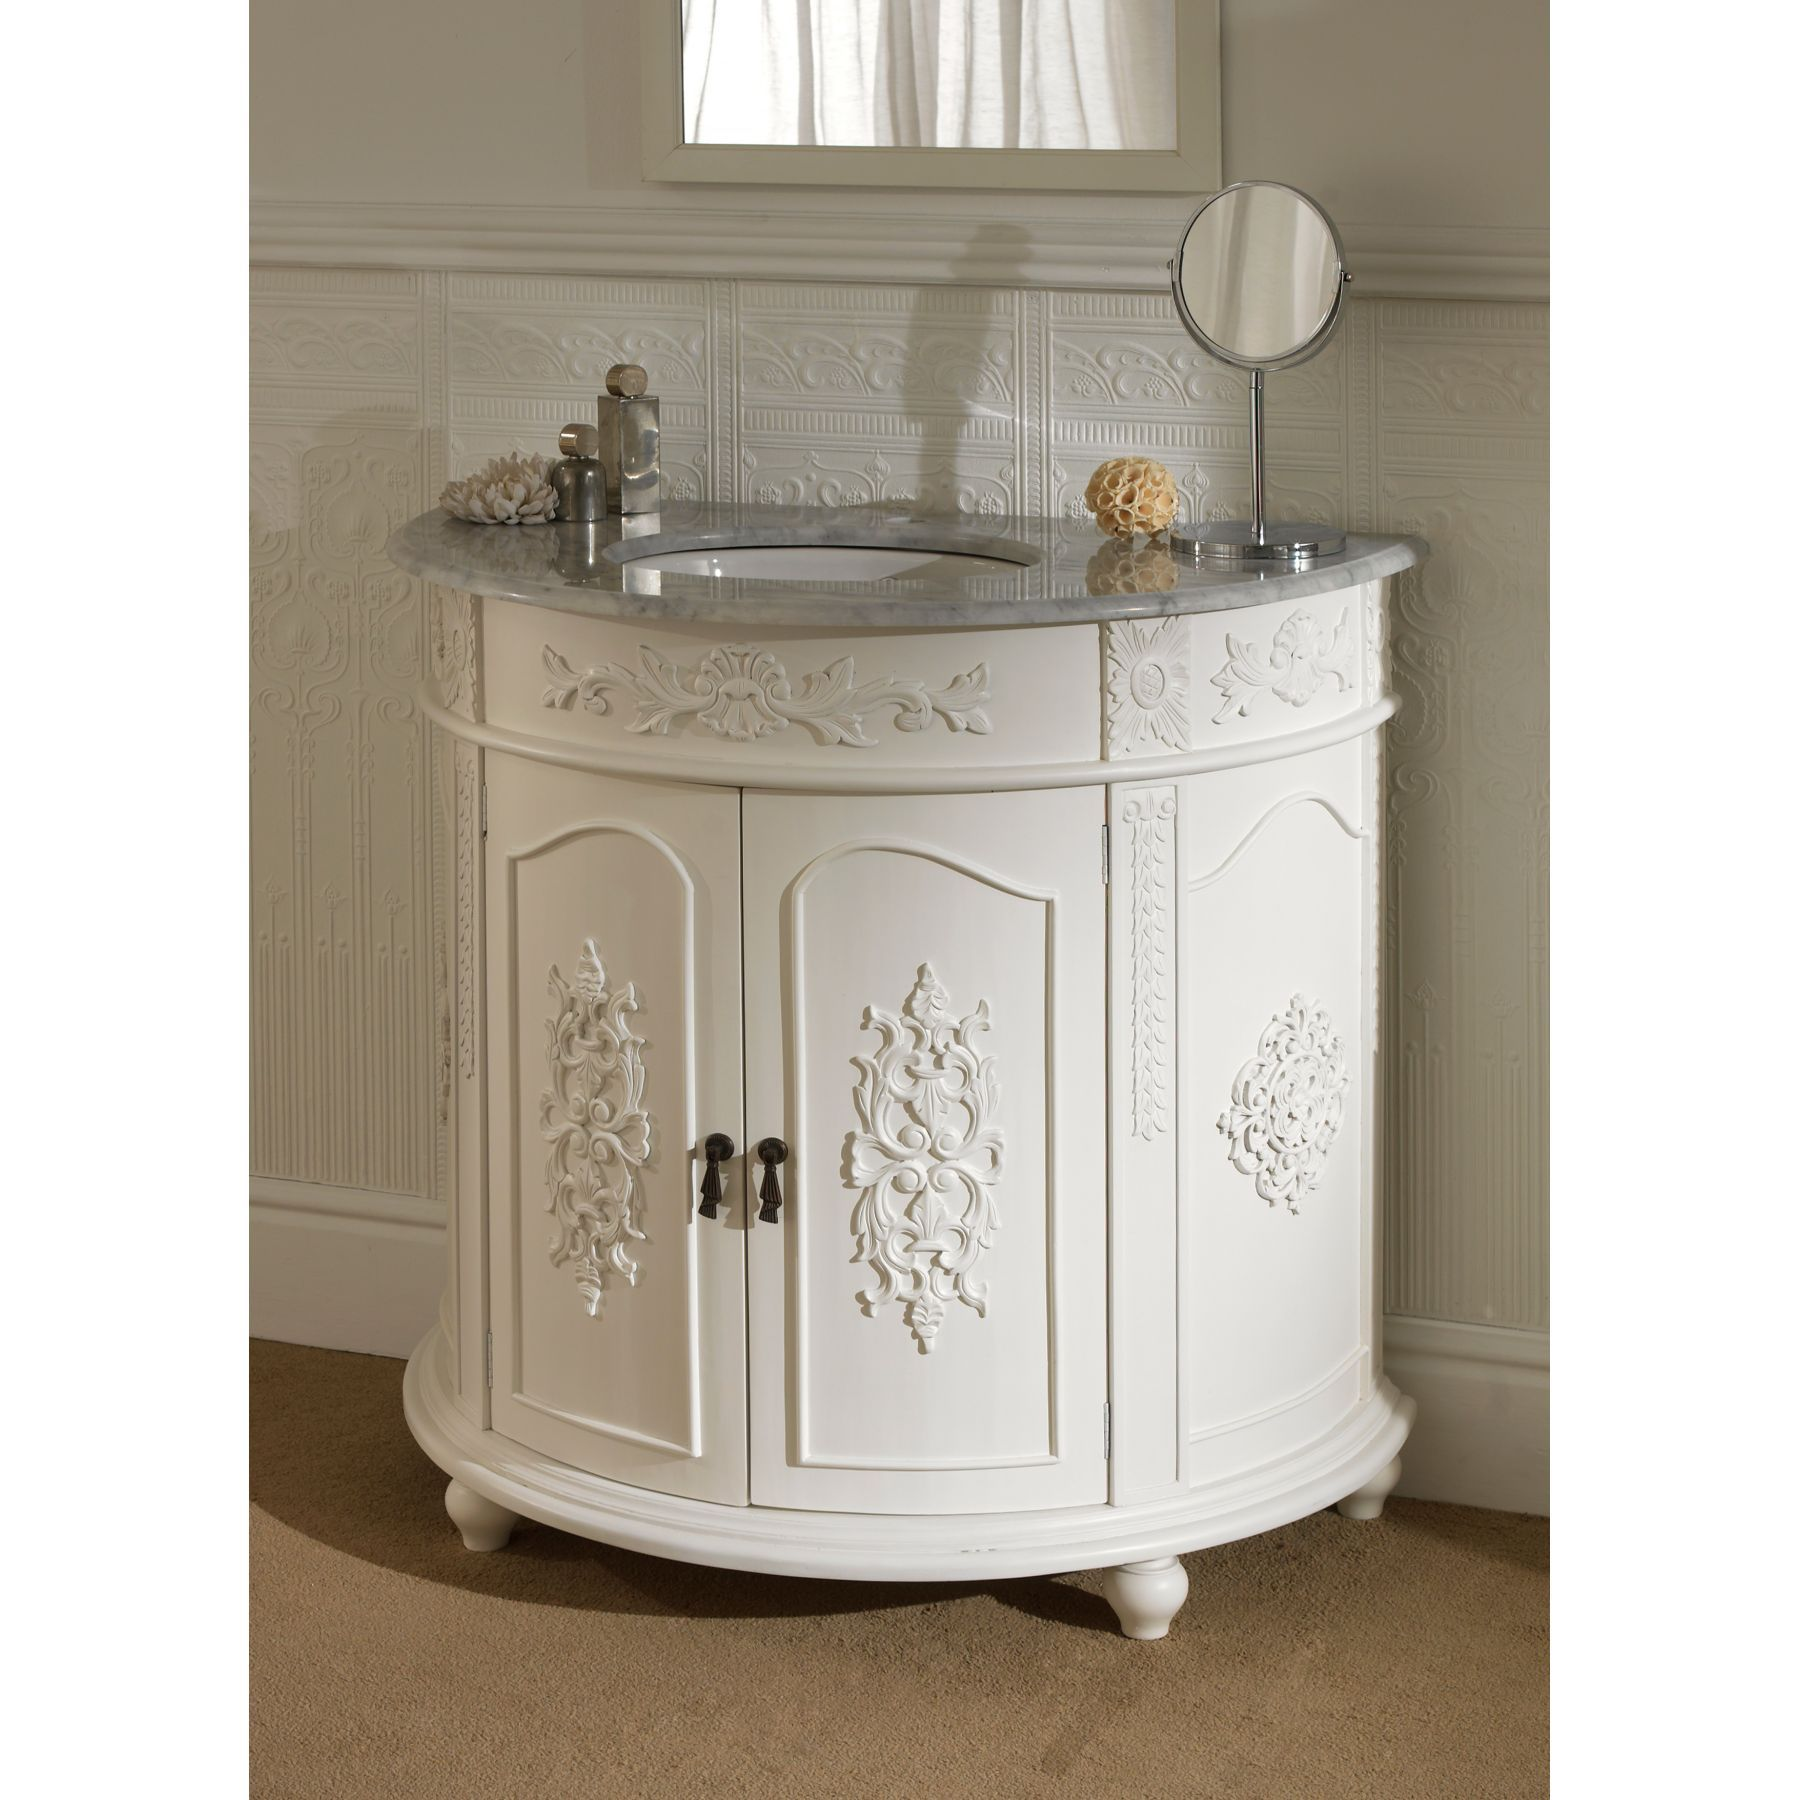 Nice Bathroom Vanity Units Matching Ranges 372la Rochelle Collection  1786circular Antique French Vanity 5997 3747 Zoom